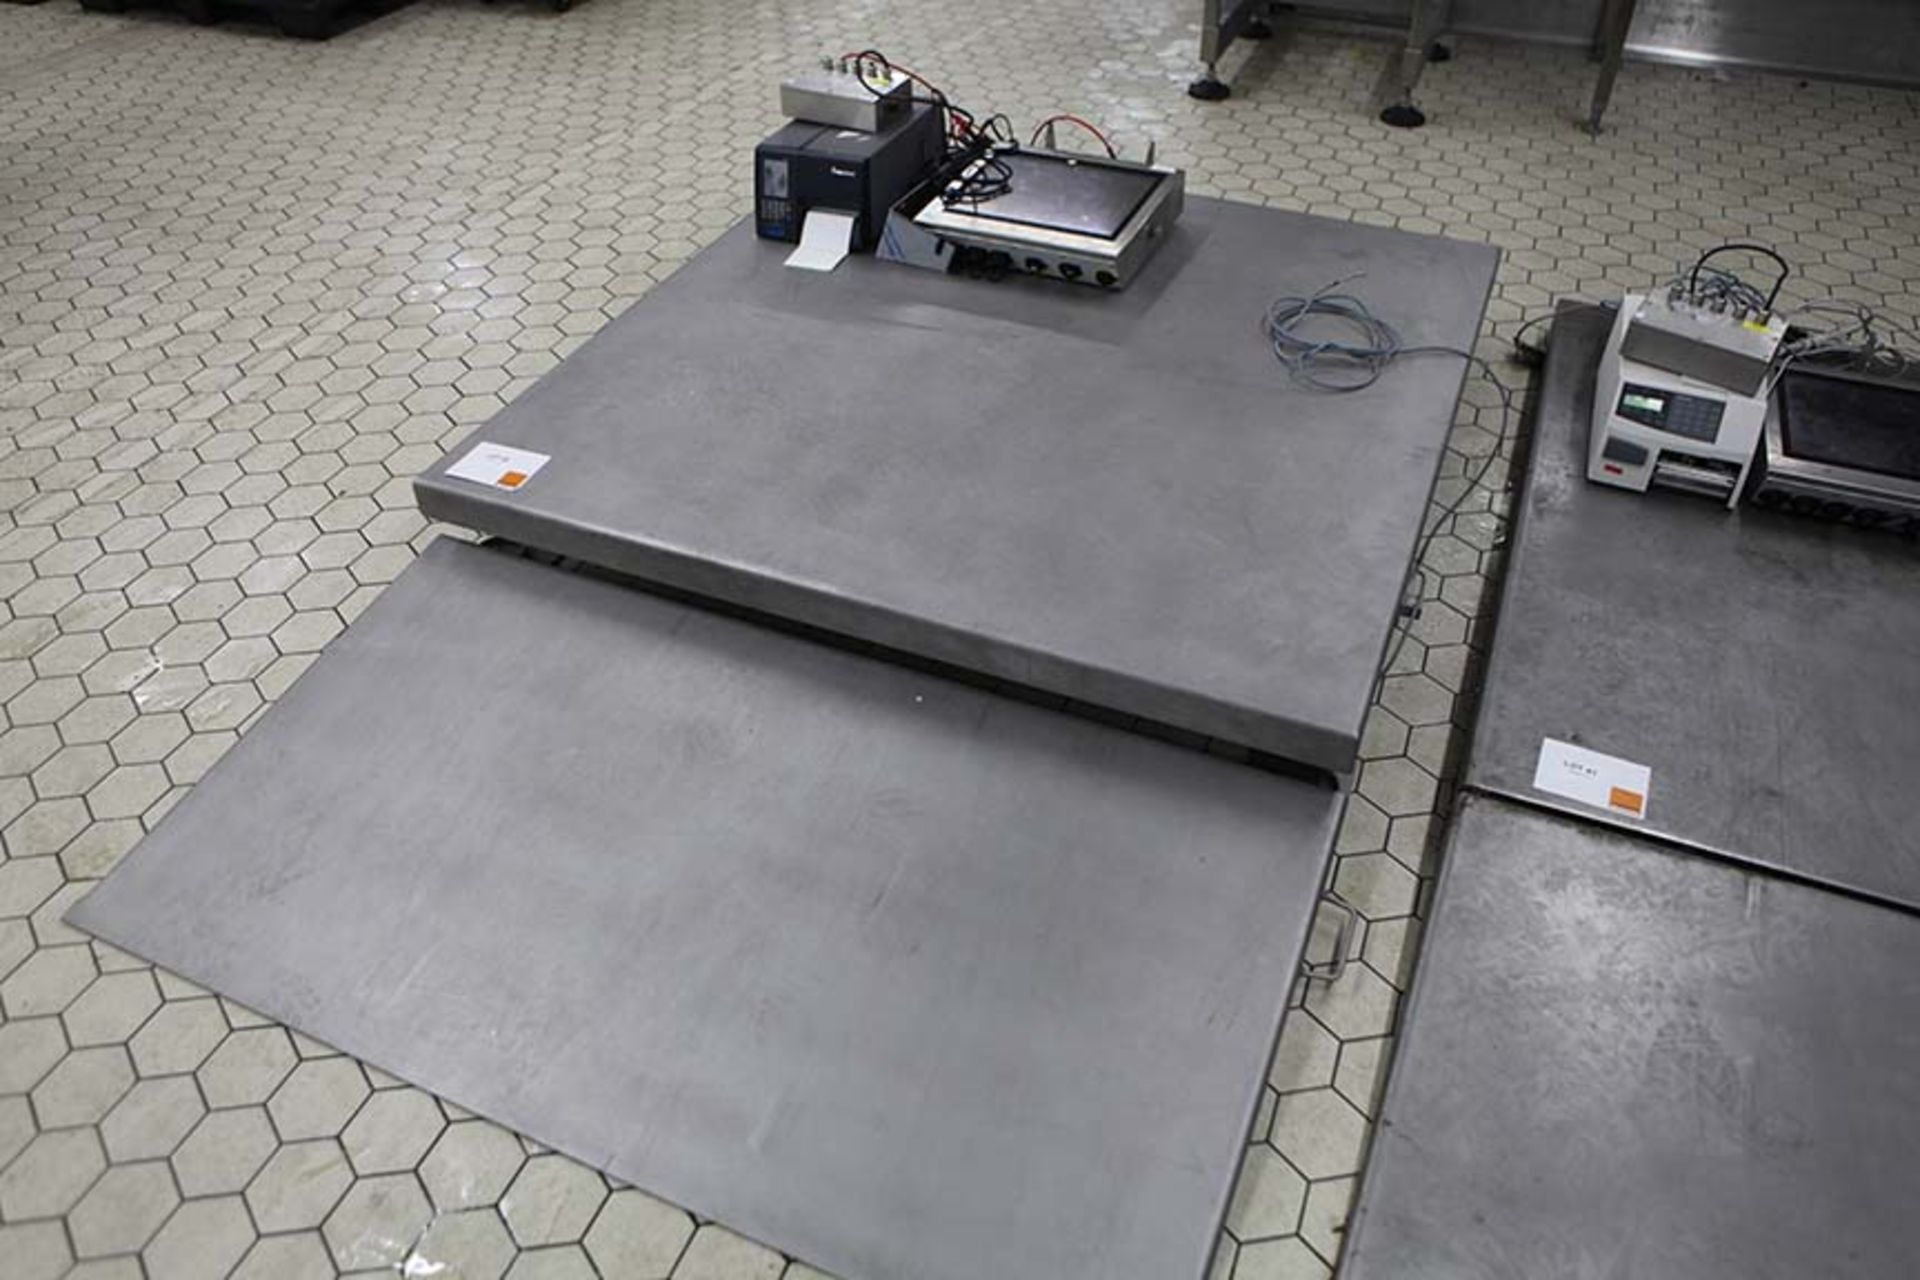 Lot 42 - Pallet Size floor scale with CSW20 display indicator Sn 216764 and printer